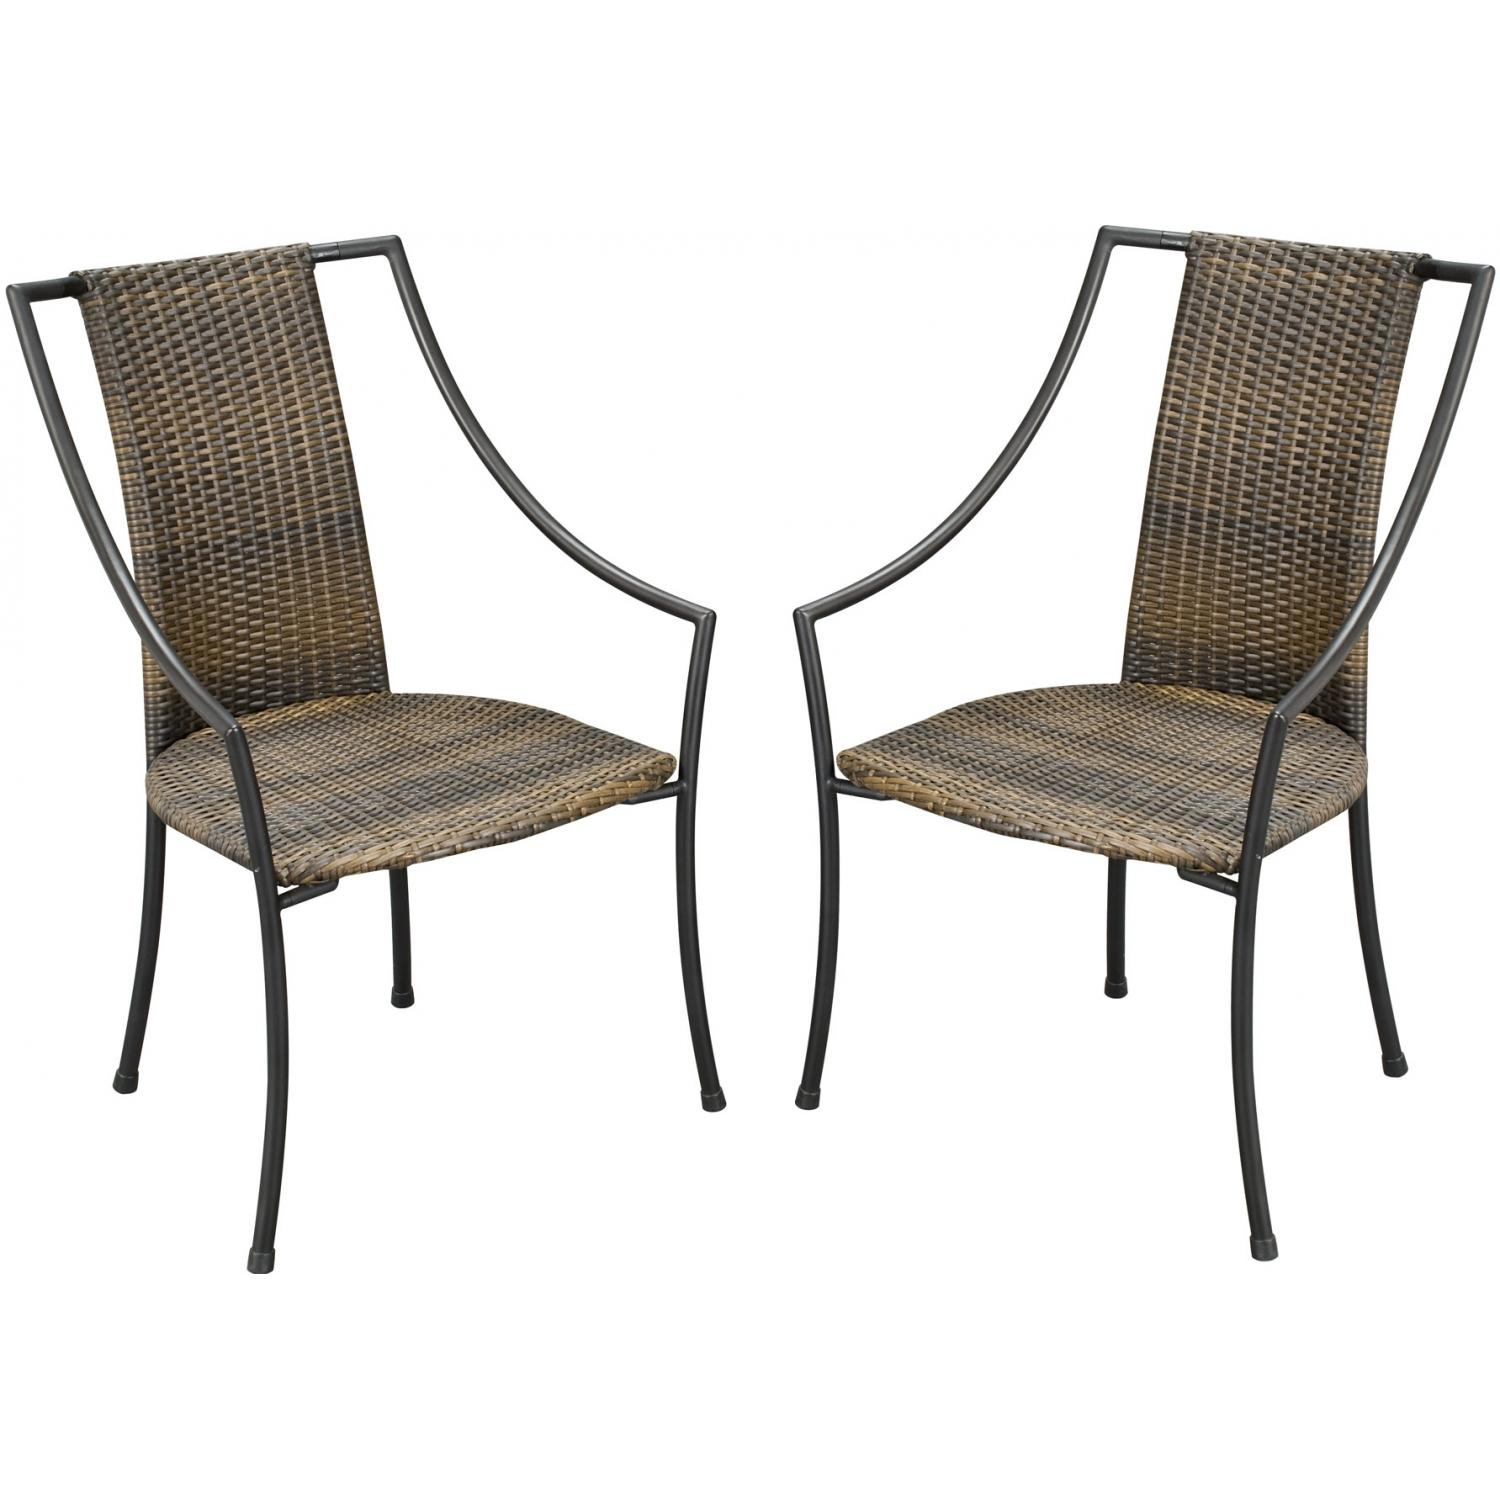 Home Styles Laguna Outdoor Patio Dining Chairs With Cushions - Set Of 2 - Walnut Brown